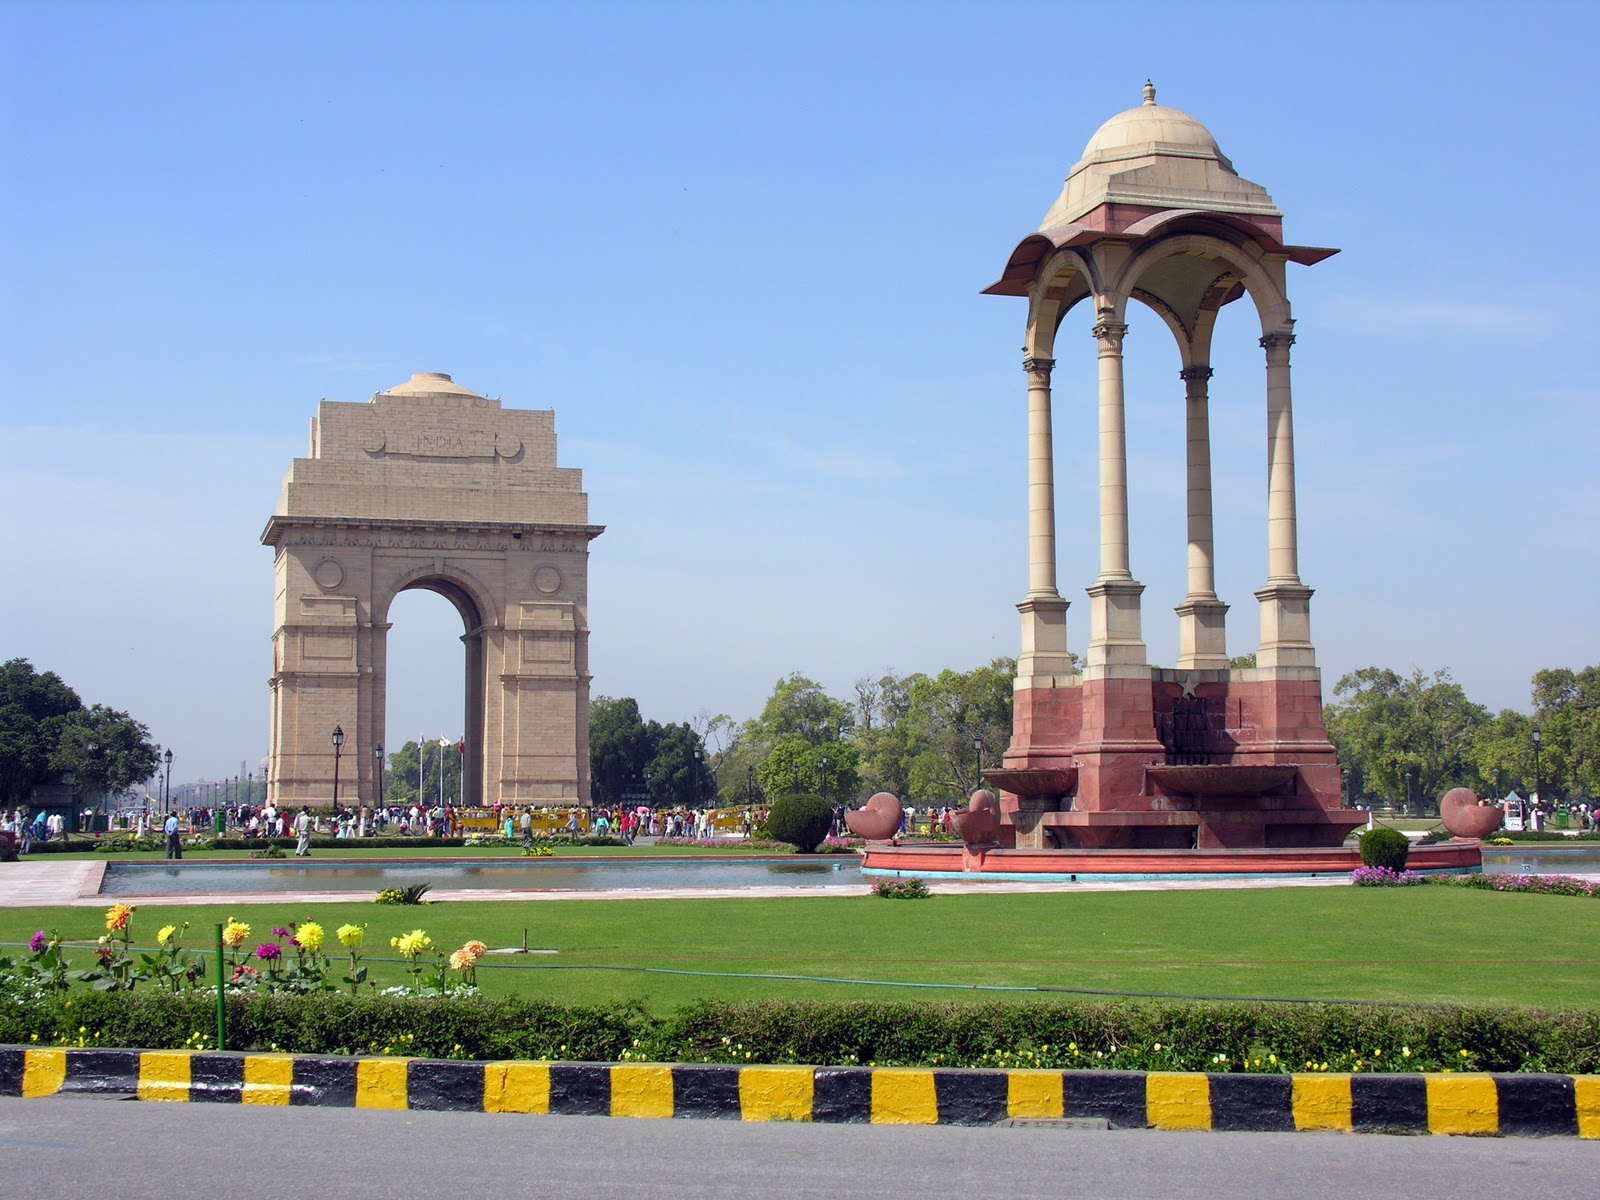 monuments of delhi Delhi capital featuring information on great history of delhi, delhi sultanate, historical monuments, tourism attractions and temples, gardens along with delhi excursions.